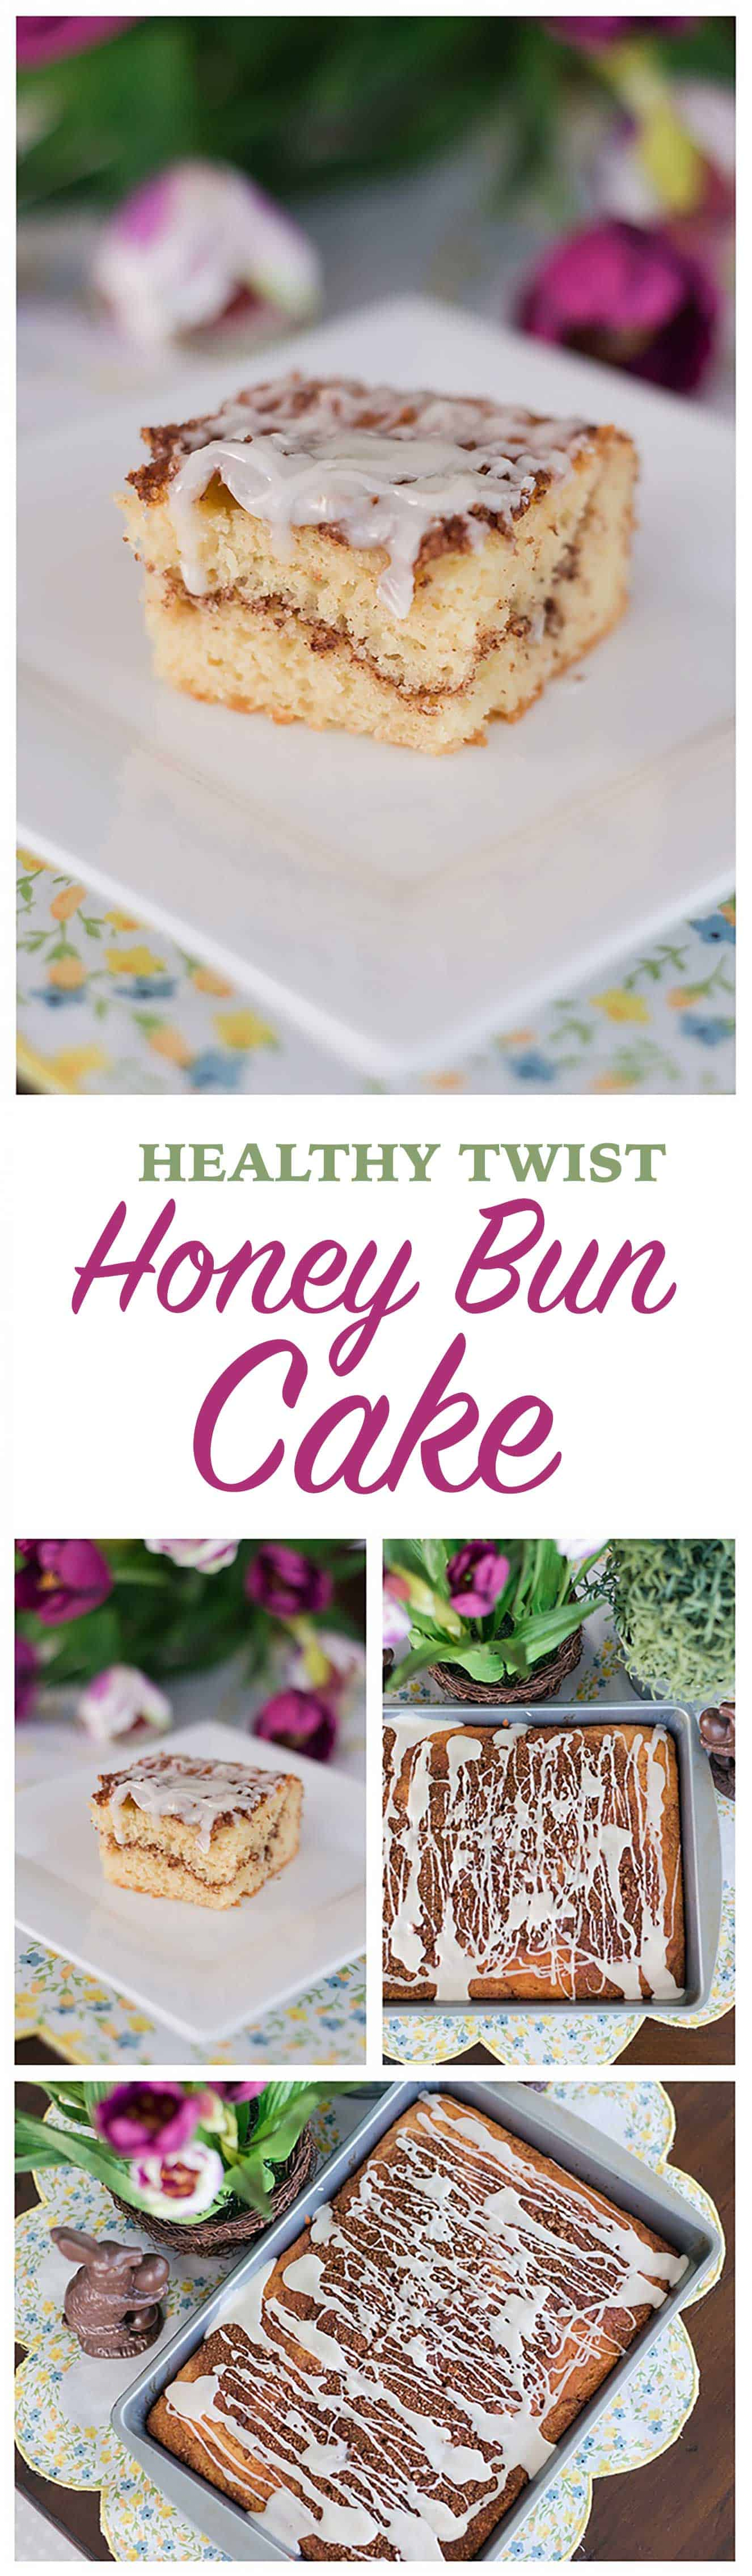 This easy Easter dessert recipe is lightened up thanks to a couple of simple substitutions. Make this guilt-free Honey Bun Cake for #Easter dessert or brunch. So quick and easy the kids can help! #dessert #brunch